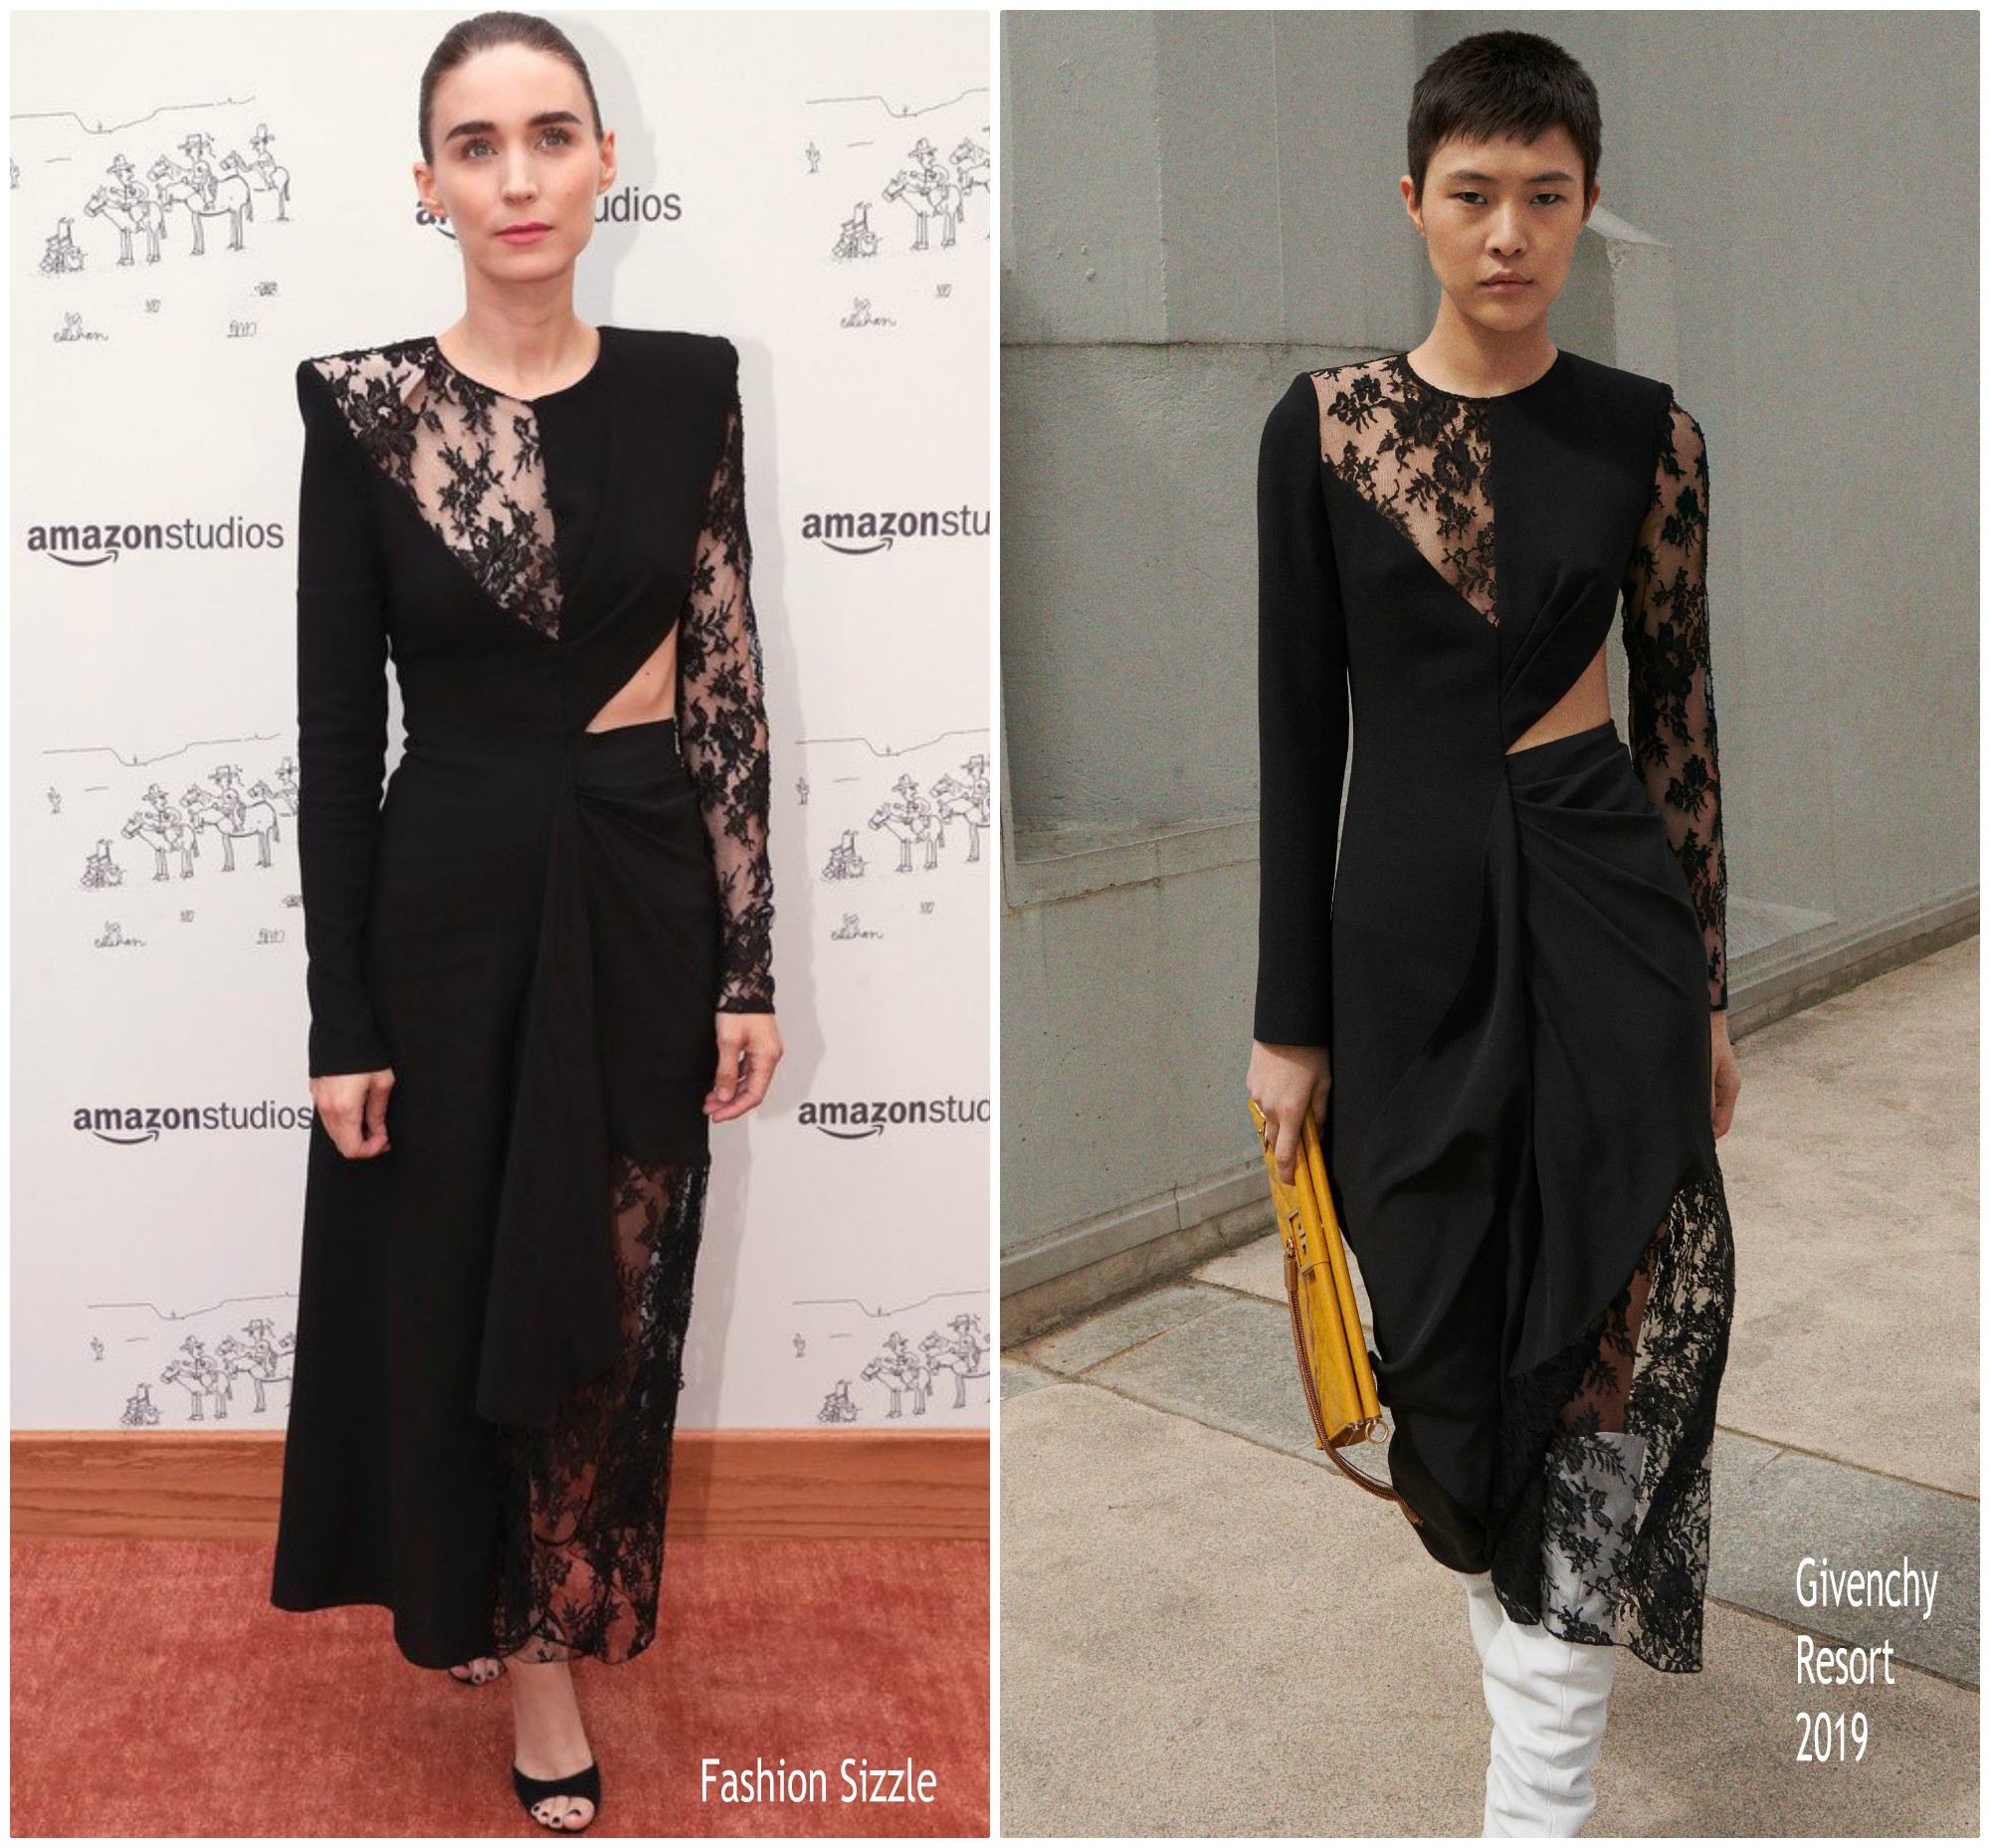 rooney-mara-in-givenchy-dont-worry-he-wont-get-far-in-foot-la-premiere